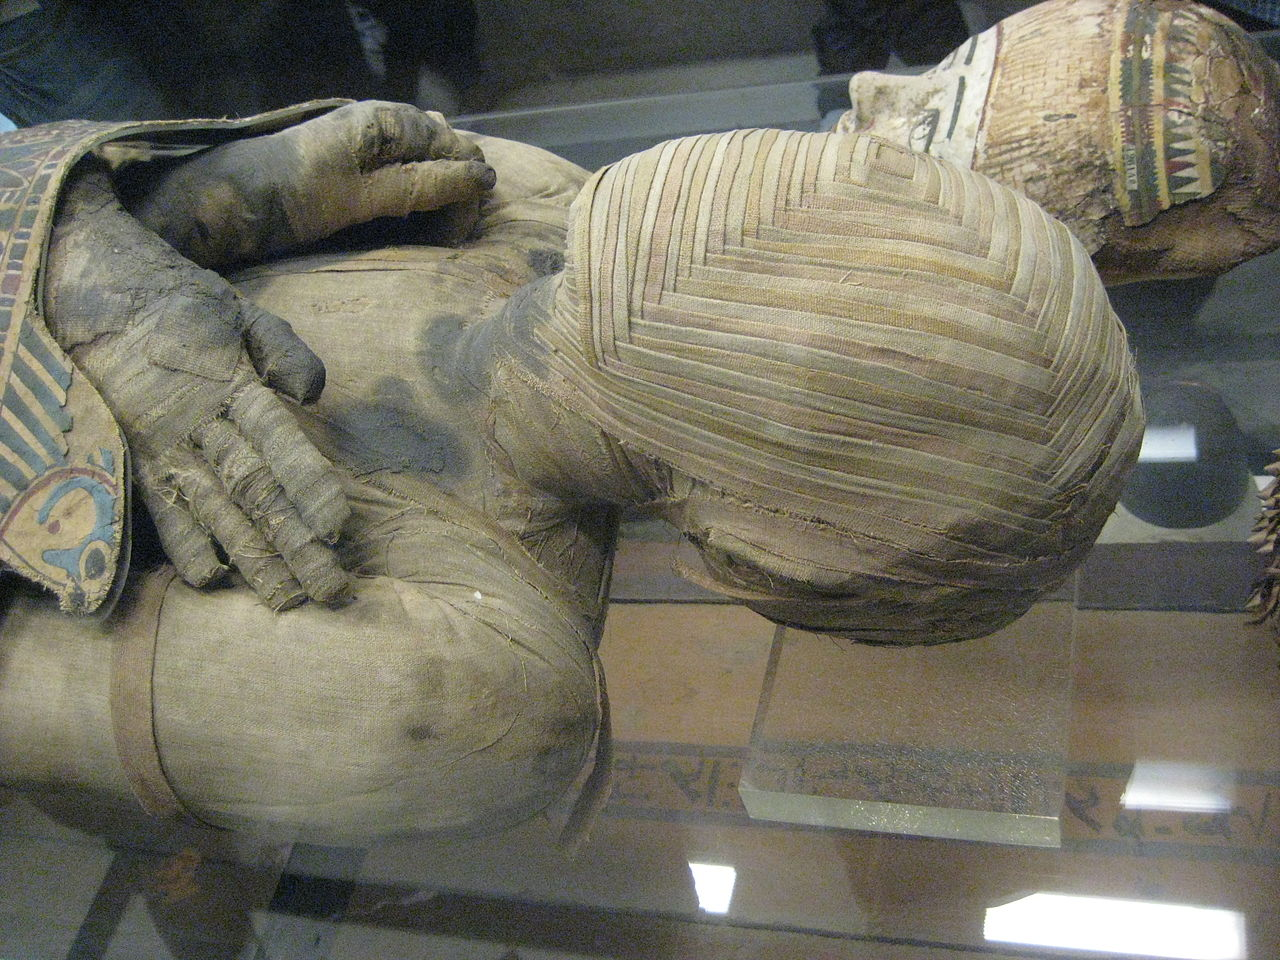 An Egyptian mummy at the Louvre in Paris